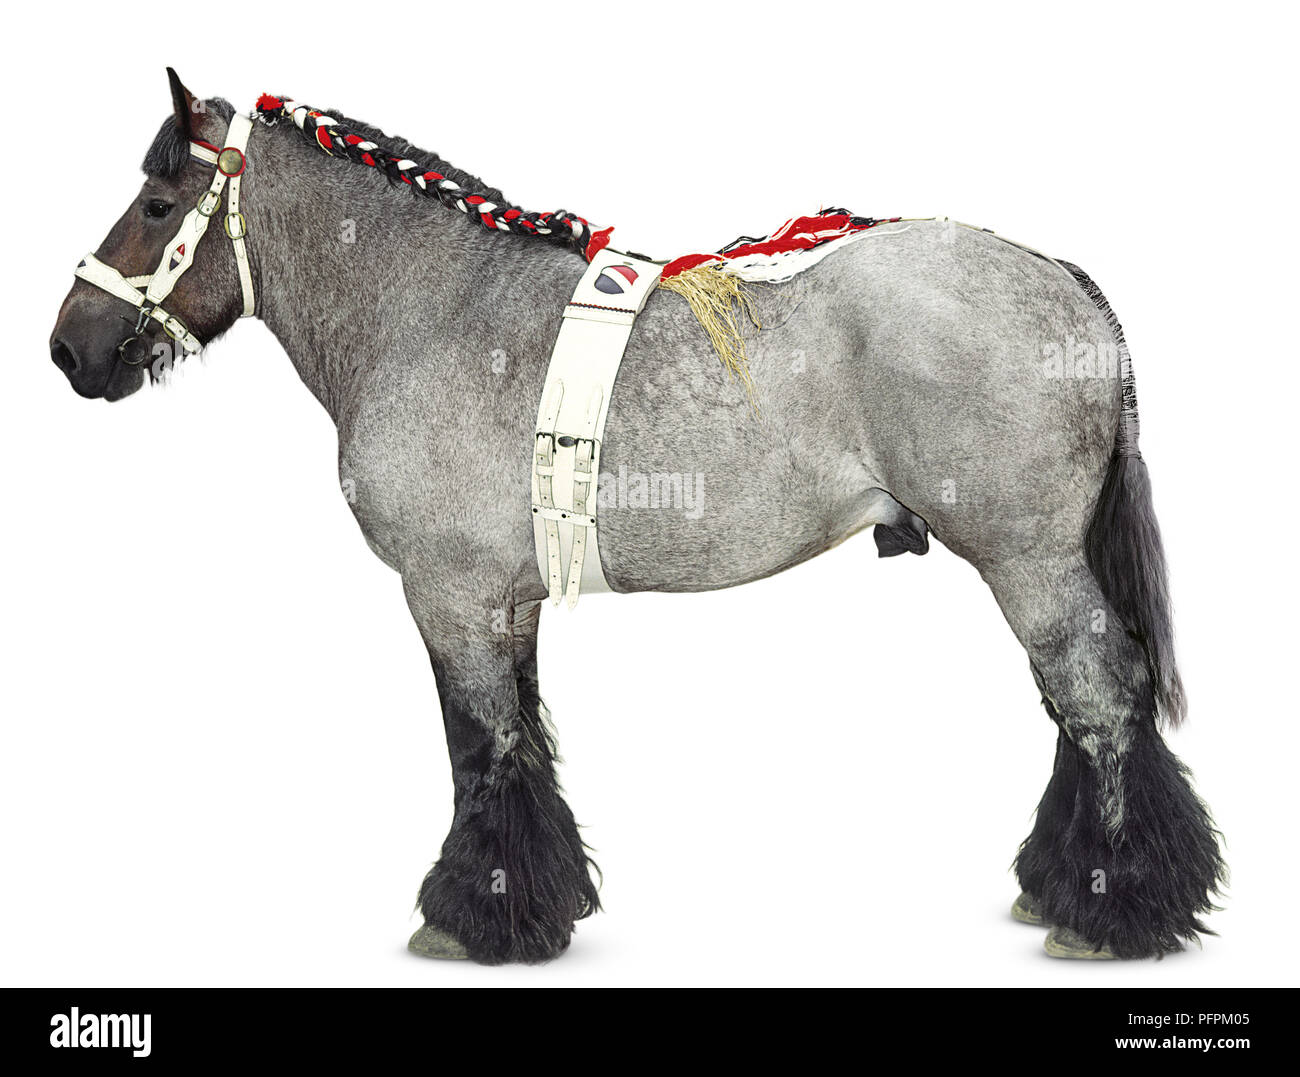 Dutch draught horse wearing a bridle, girth and plaited mane - Stock Image